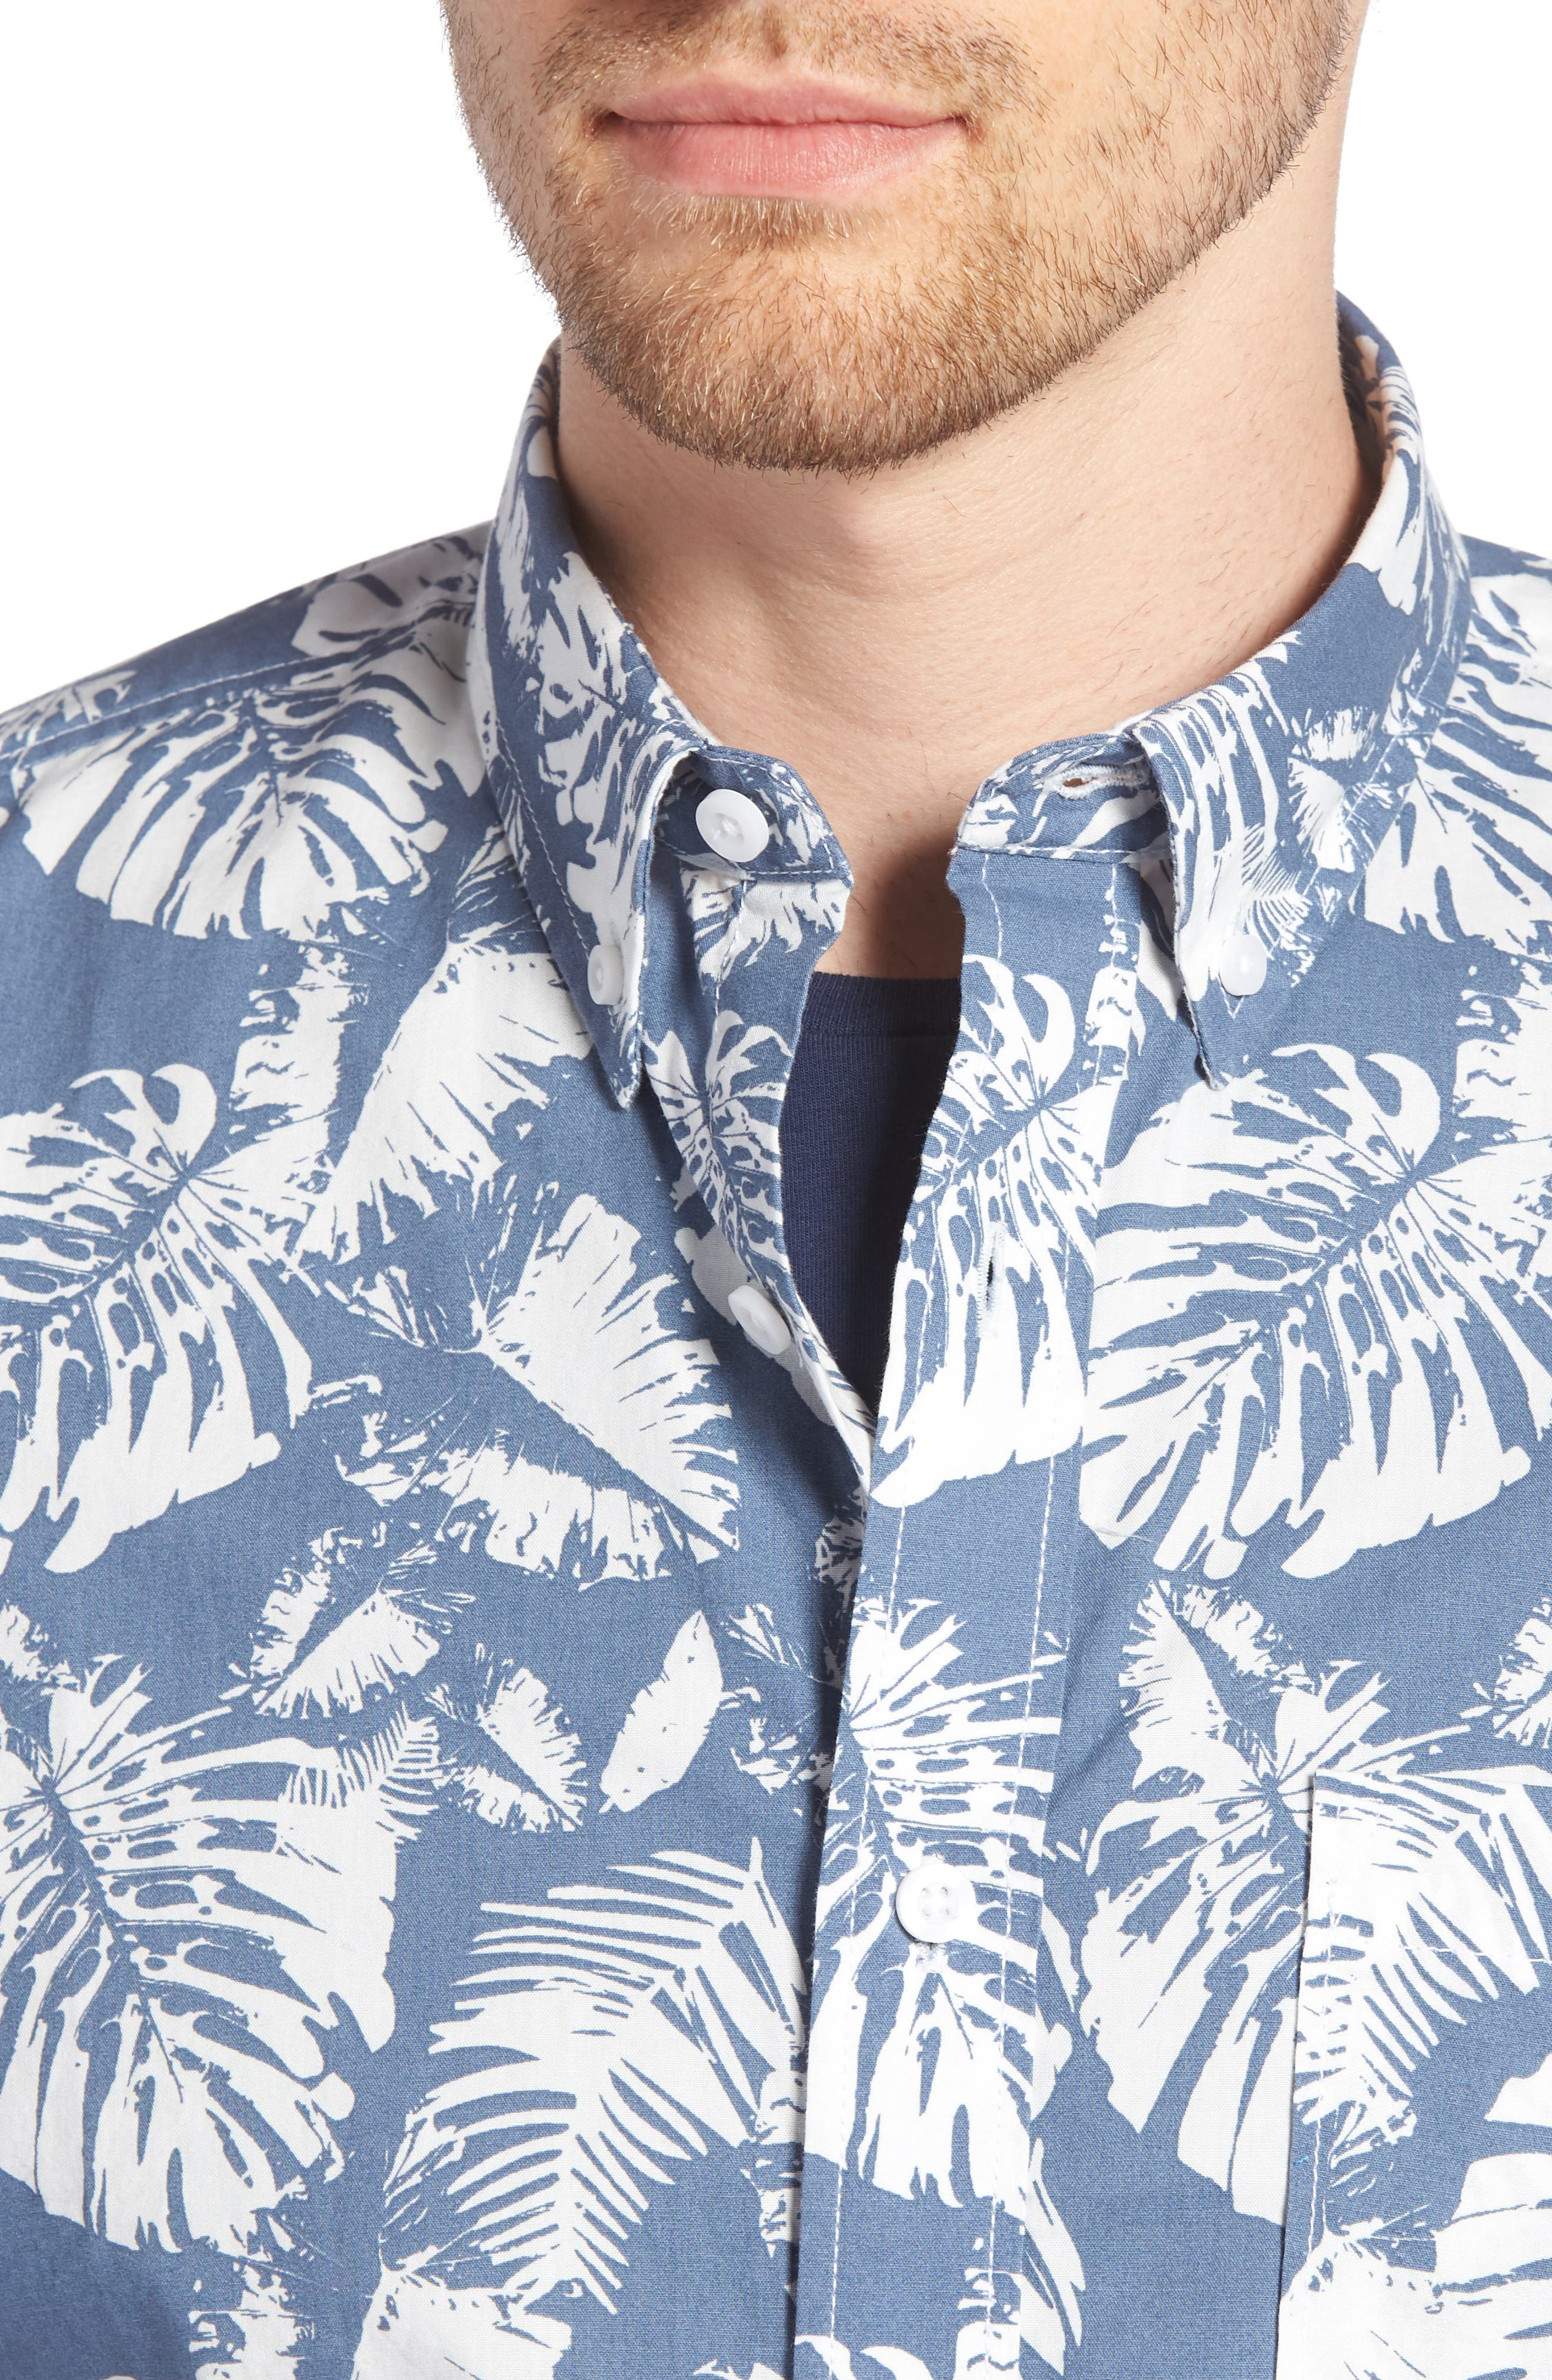 Trim Fit Palm Print Sport Shirt,                             Alternate thumbnail 4, color,                             410